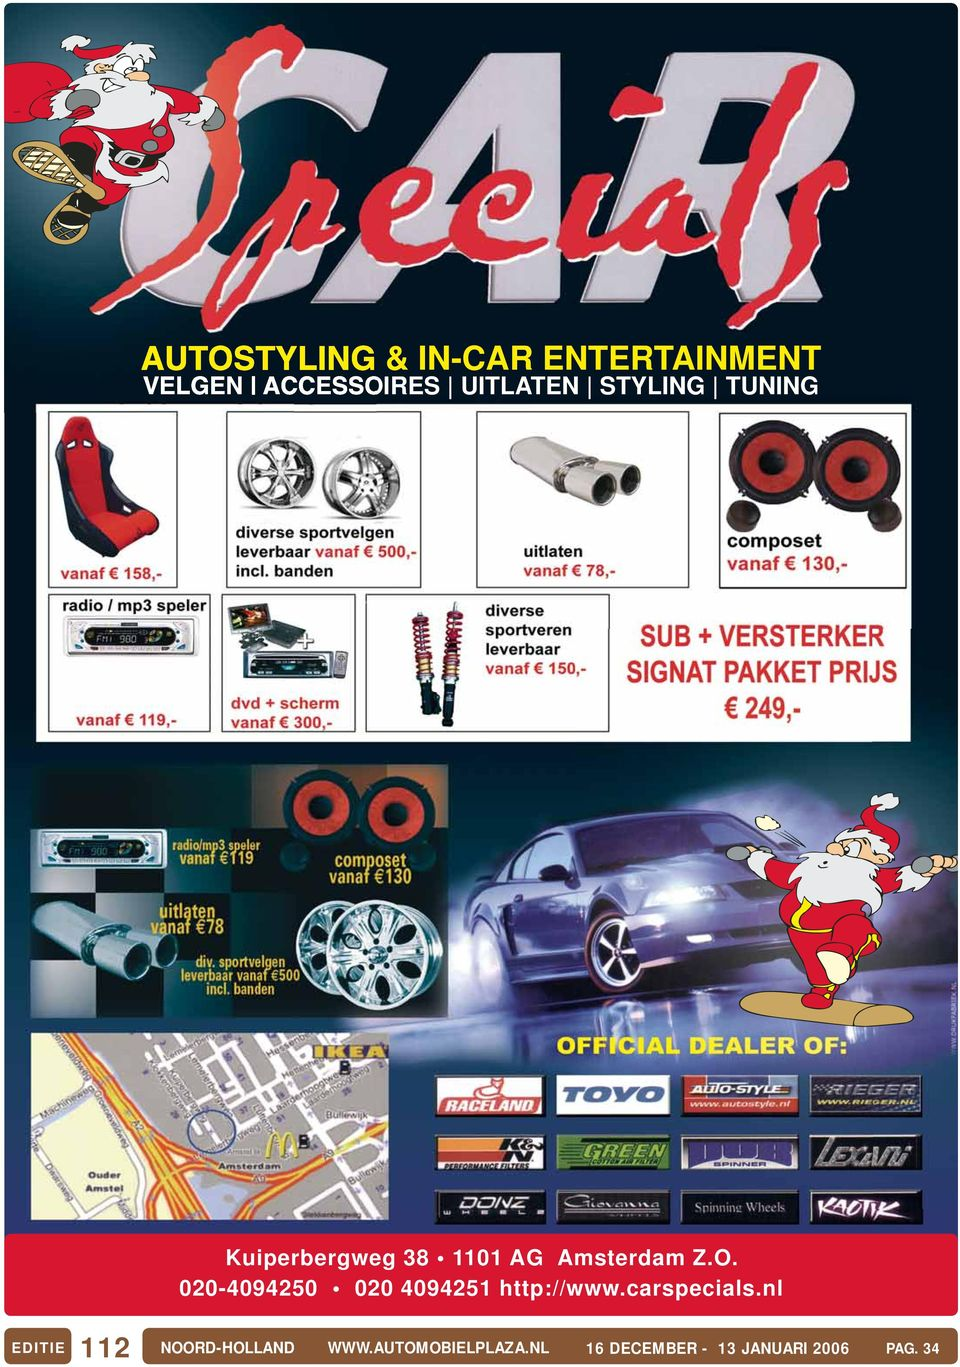 020-4094250 020 4094251 http://www.carspecials.